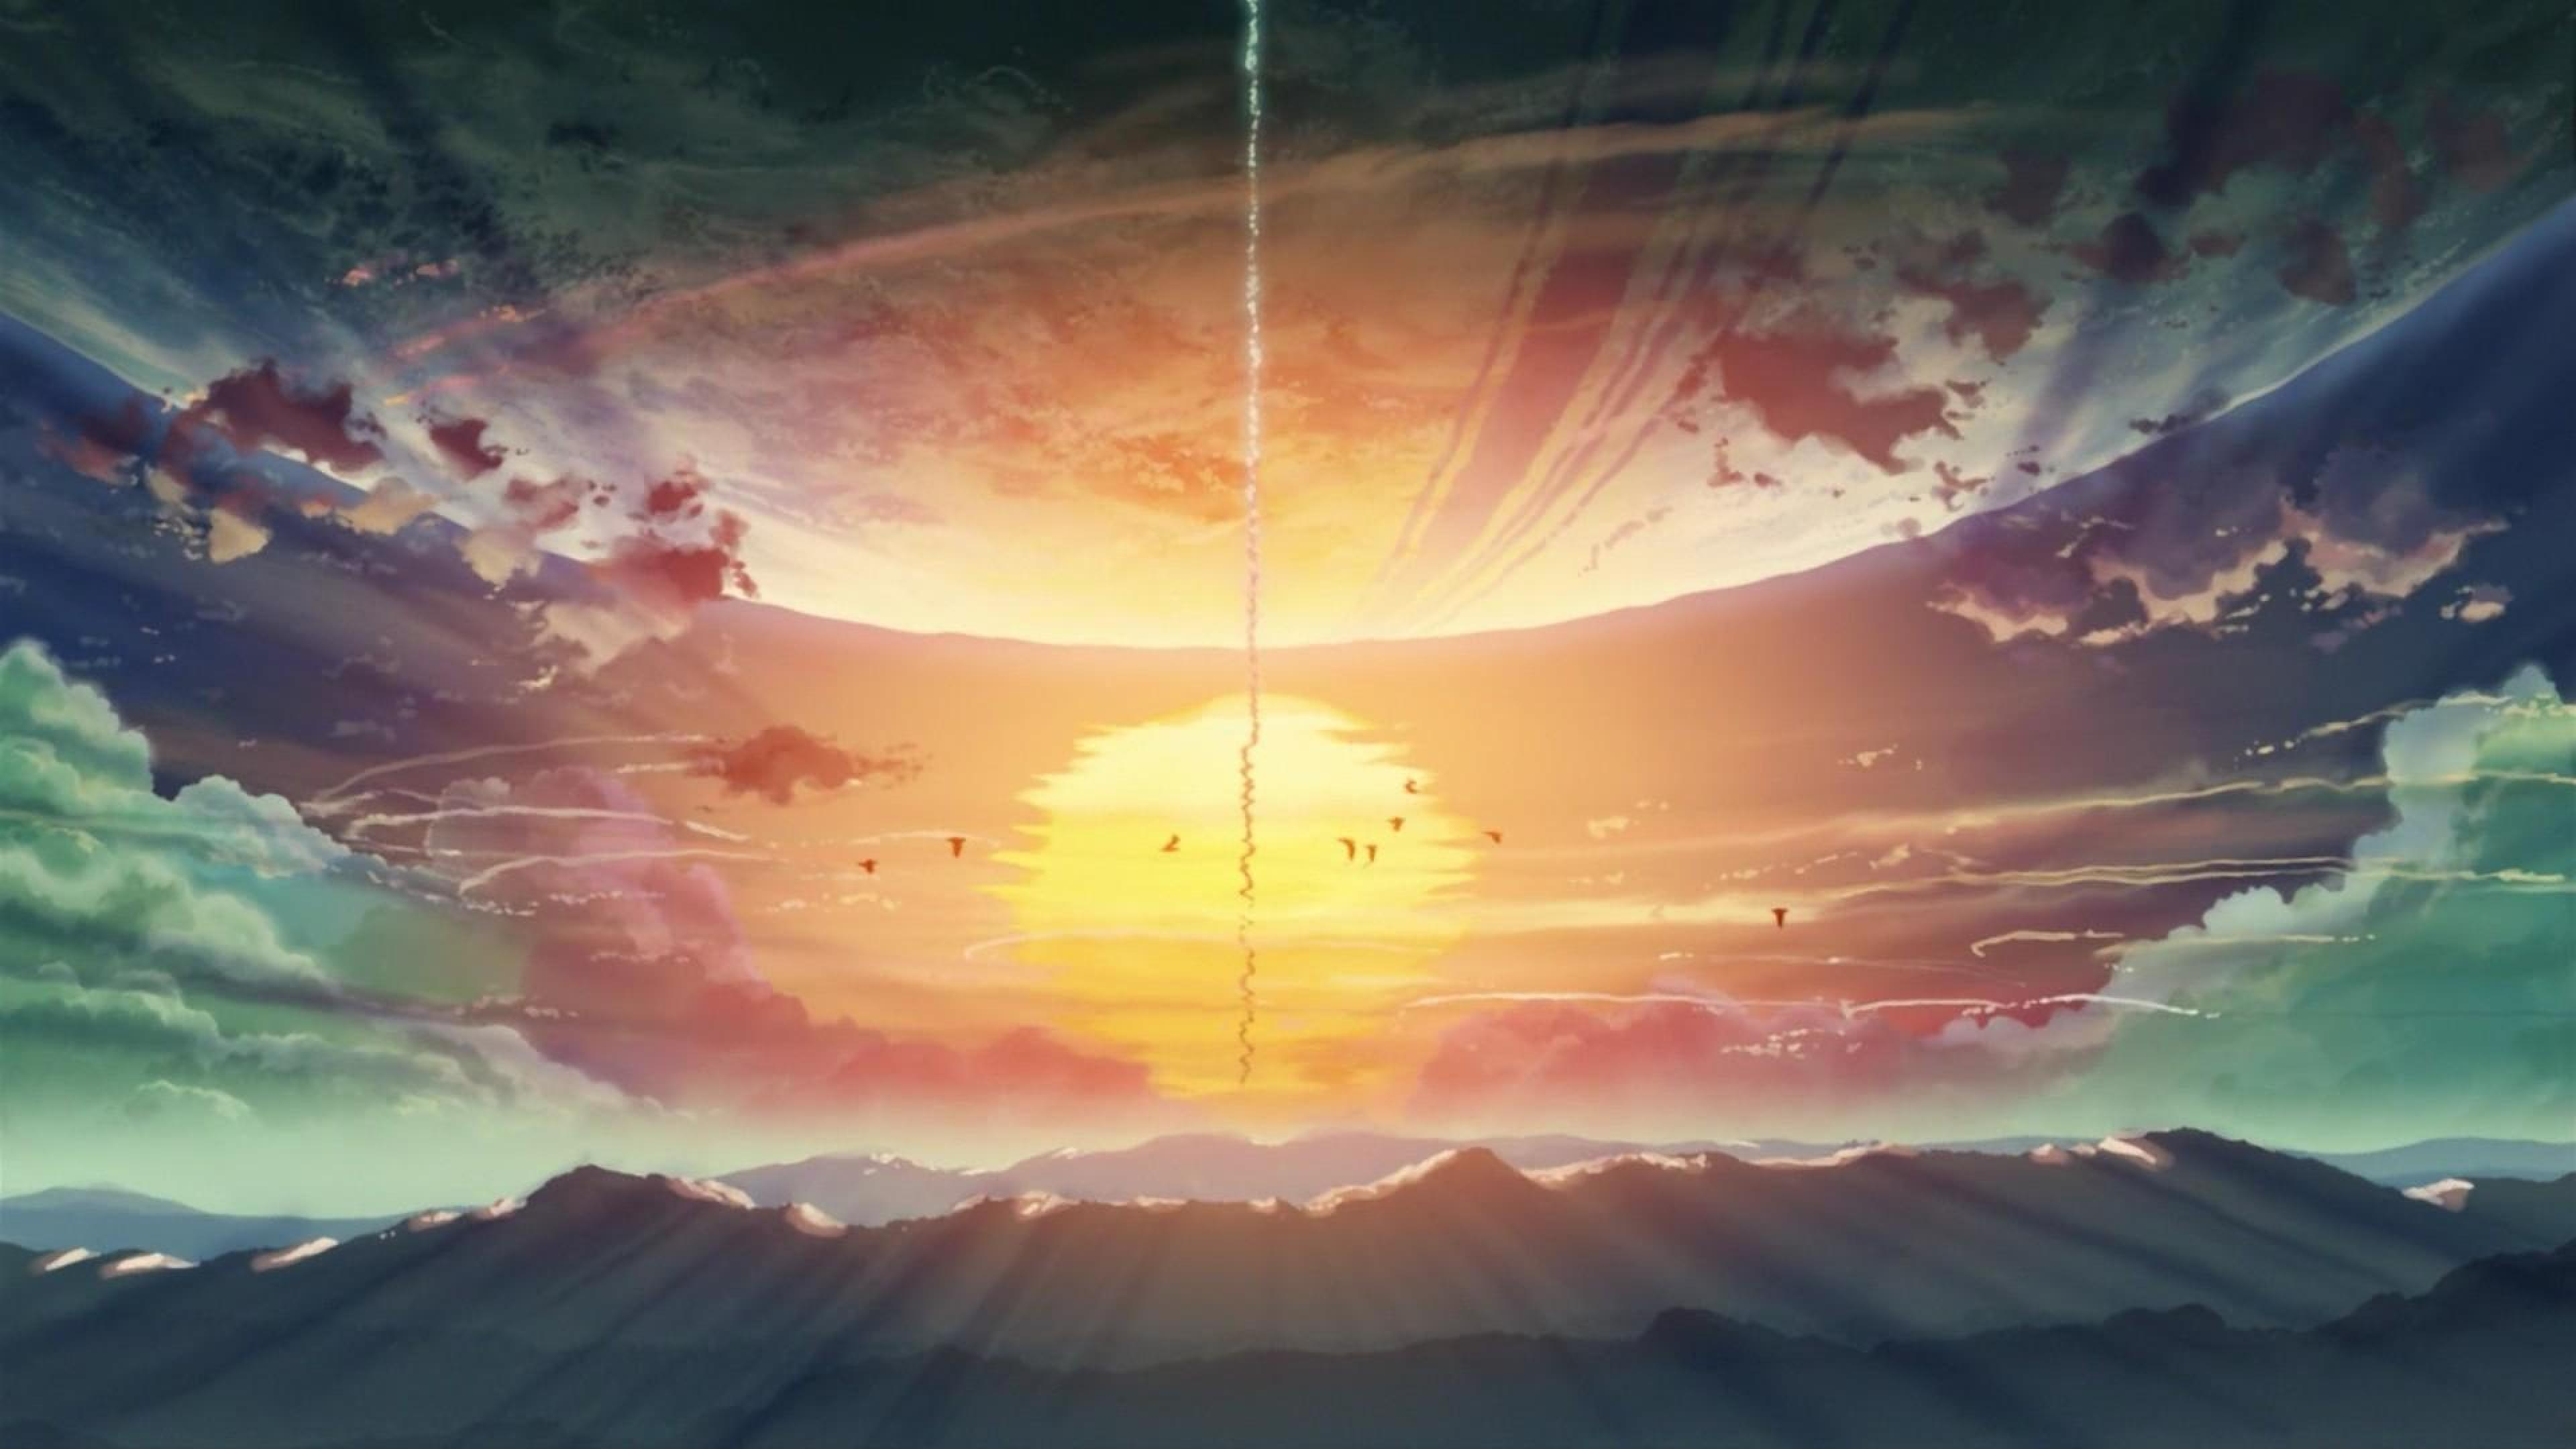 Free Download 5 Centimeters Per Second Backgrounds 3840x2160 For